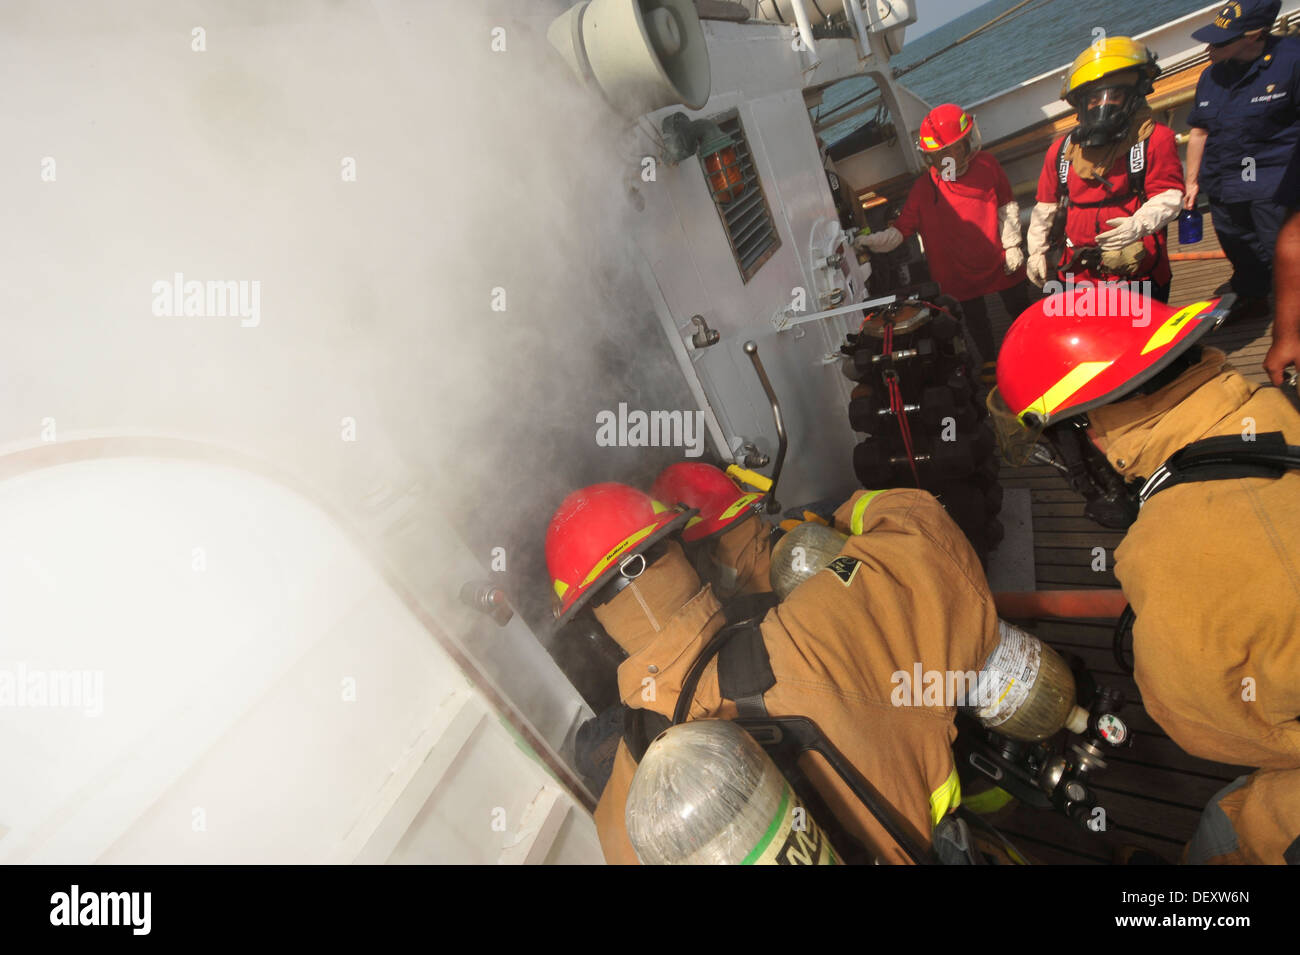 Officer candidates engage a simulated fire in the laundry room aboard the Coast Guard Barque Eagle on Thursday, Sept. 12, 2013. - Stock Image